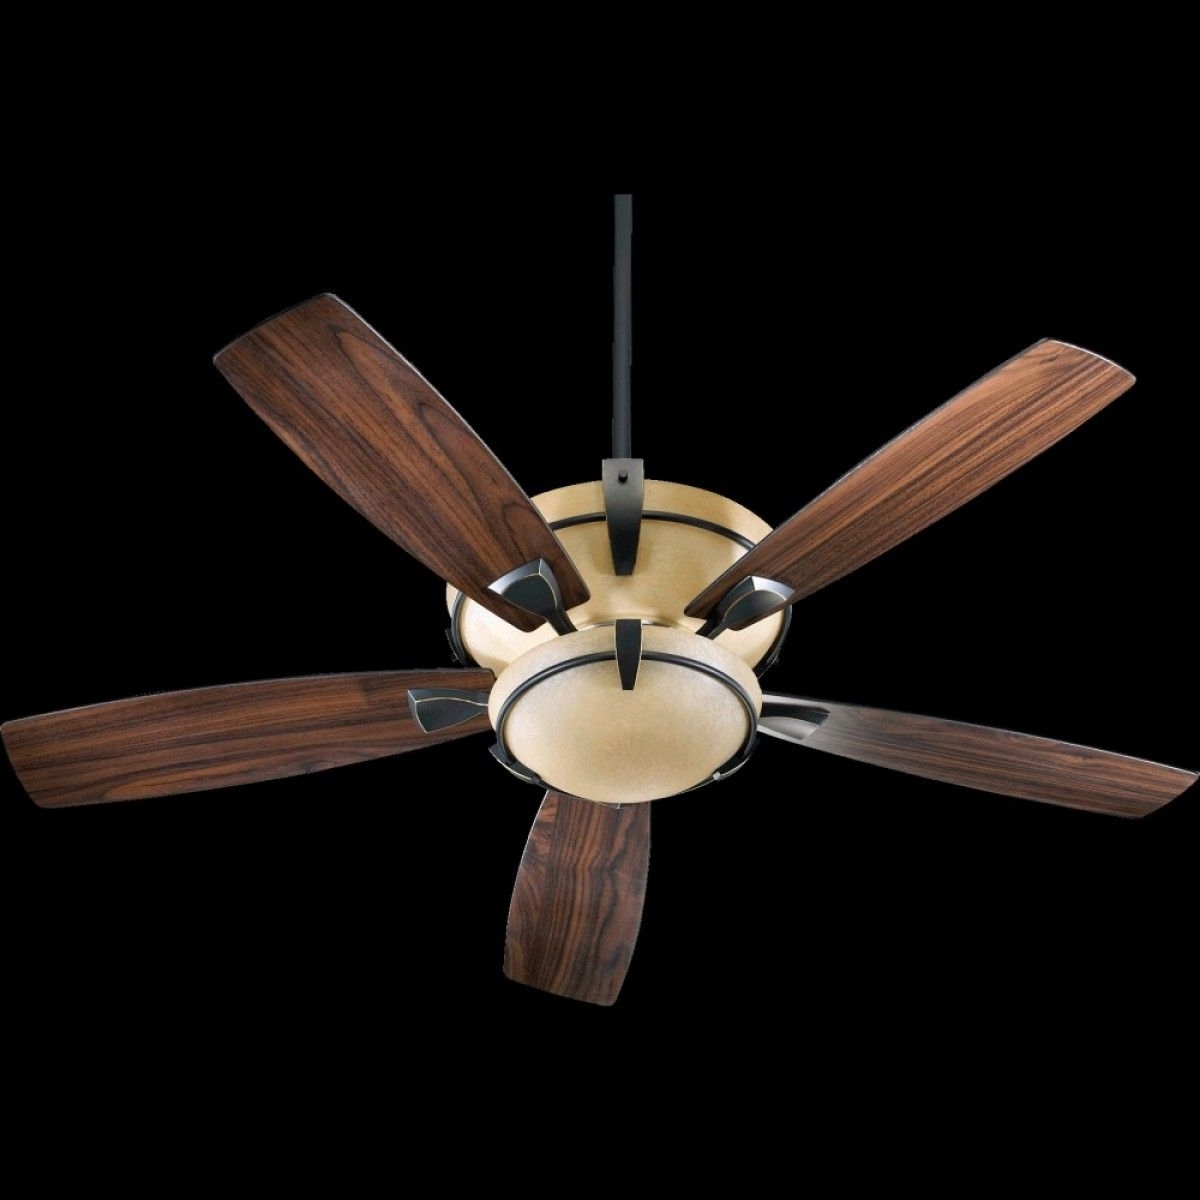 Outdoor Ceiling Fans With Uplights Intended For Well Known Ceiling, Charming Ceiling Fans With Uplights Uplight Ceiling Fan (View 16 of 20)